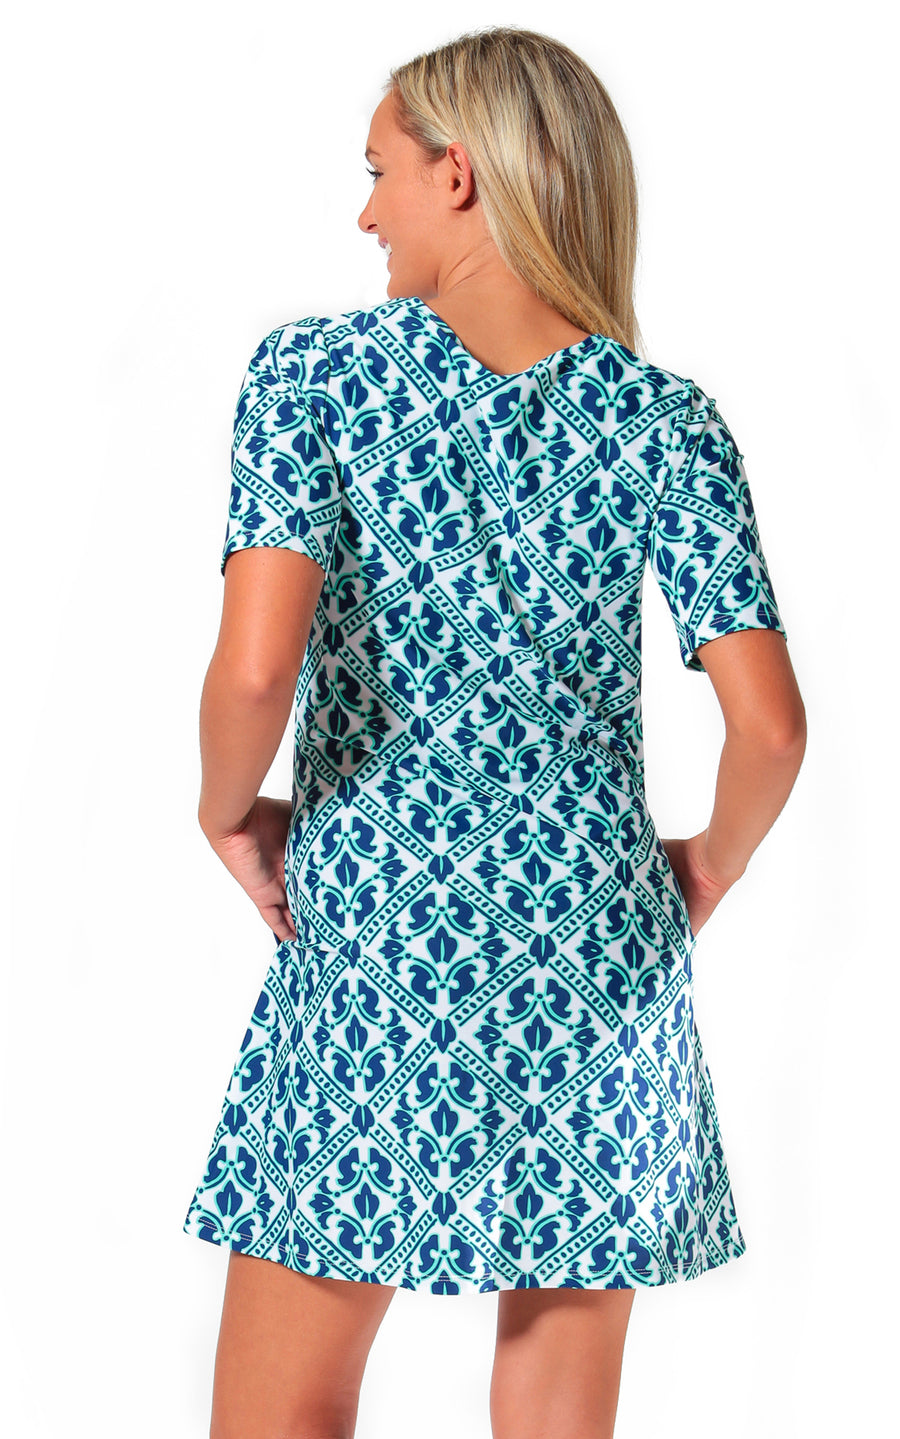 Aqua Trellis Bayshore Lane Swing Dress - FINAL SALE